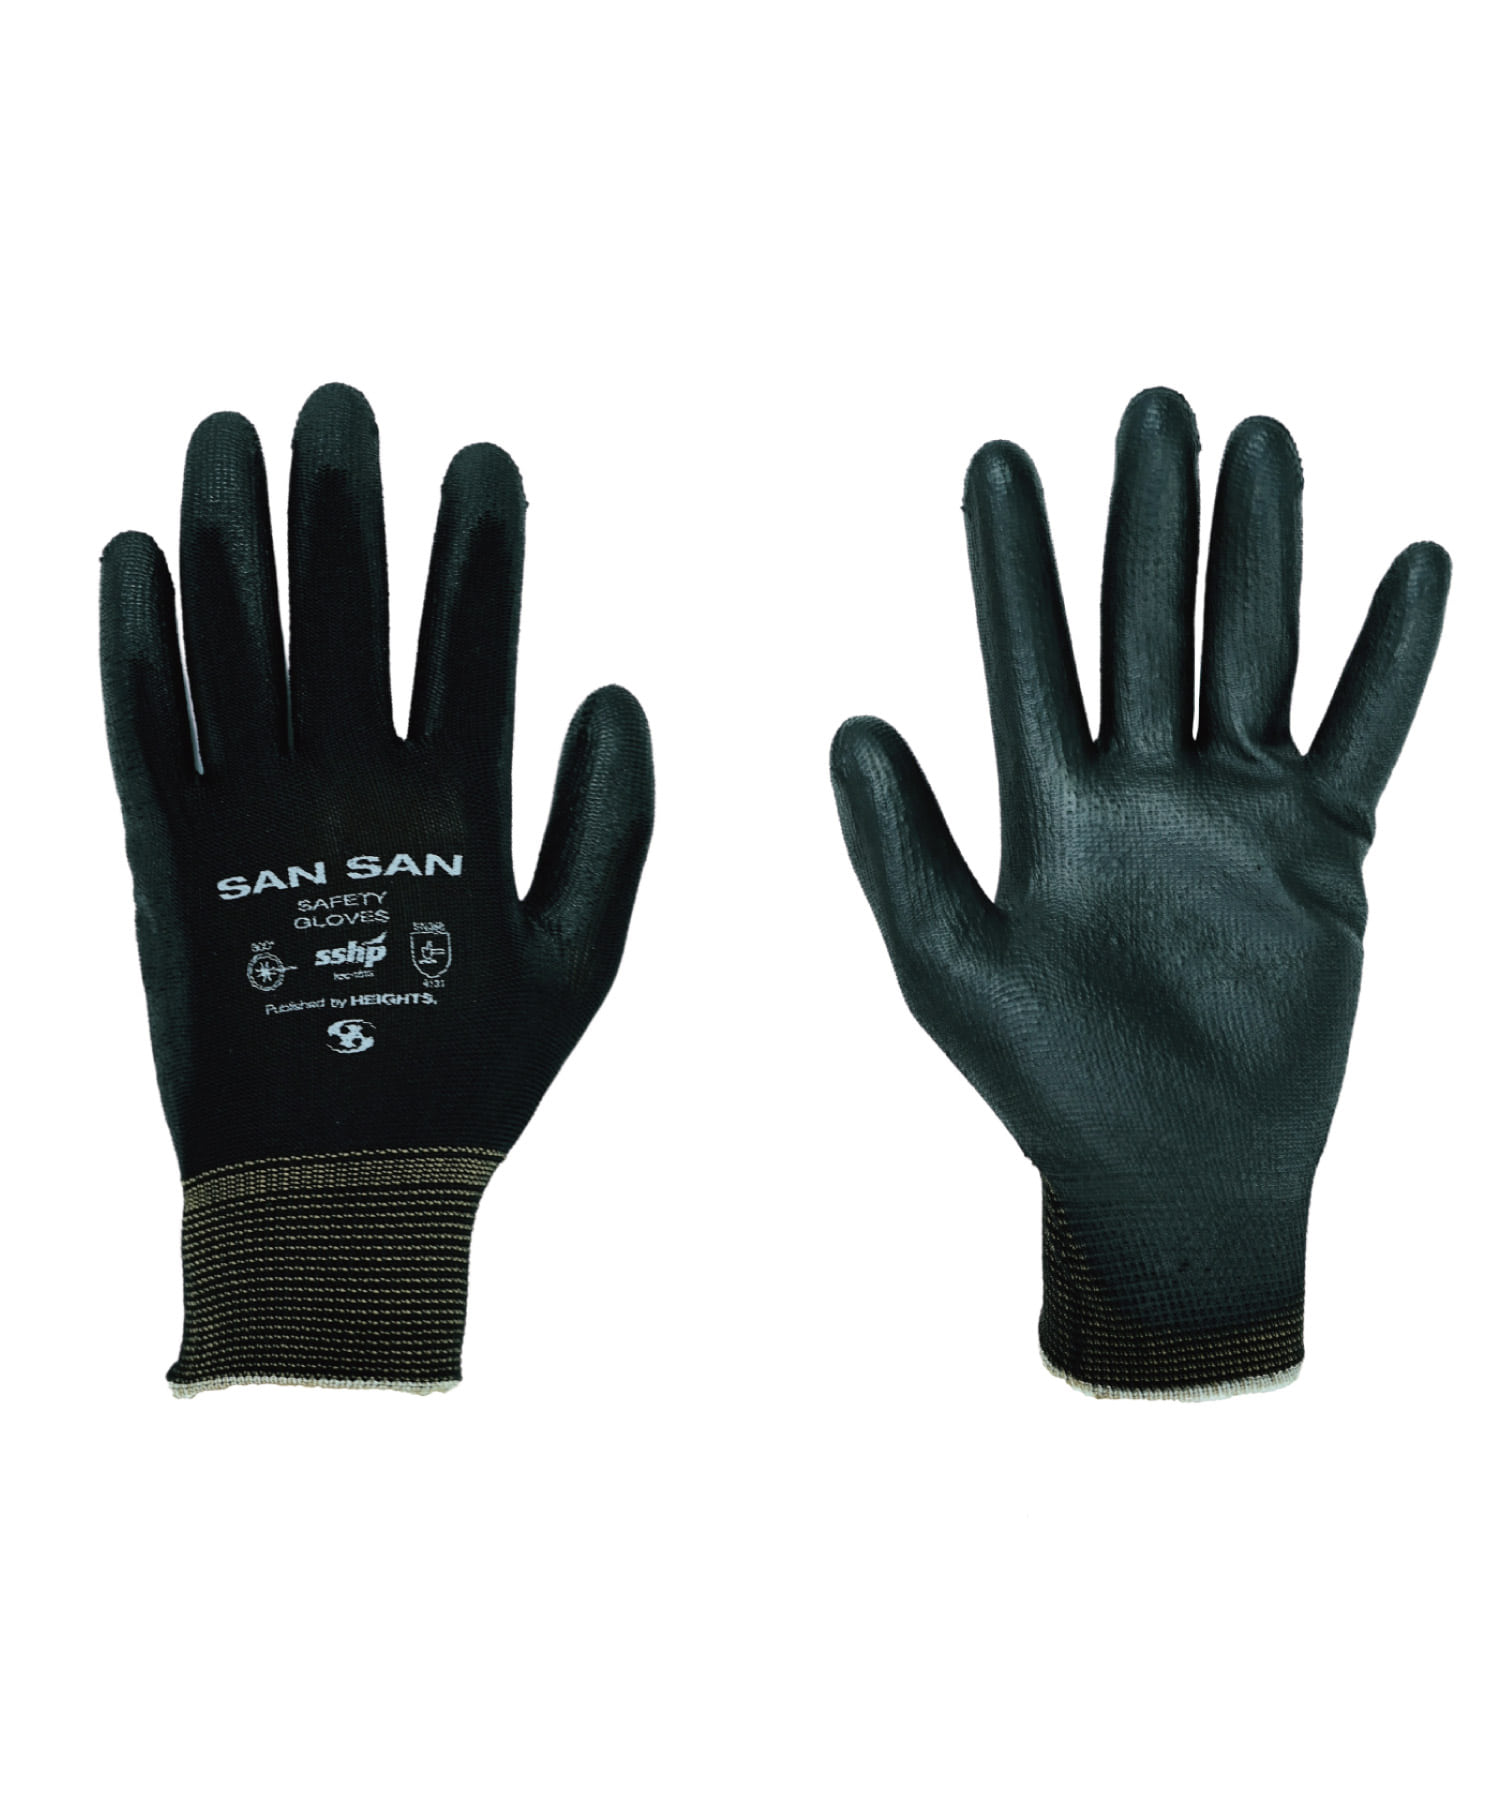 SAFETY GLOVES BLACK (2 SET IN 1 PACK)